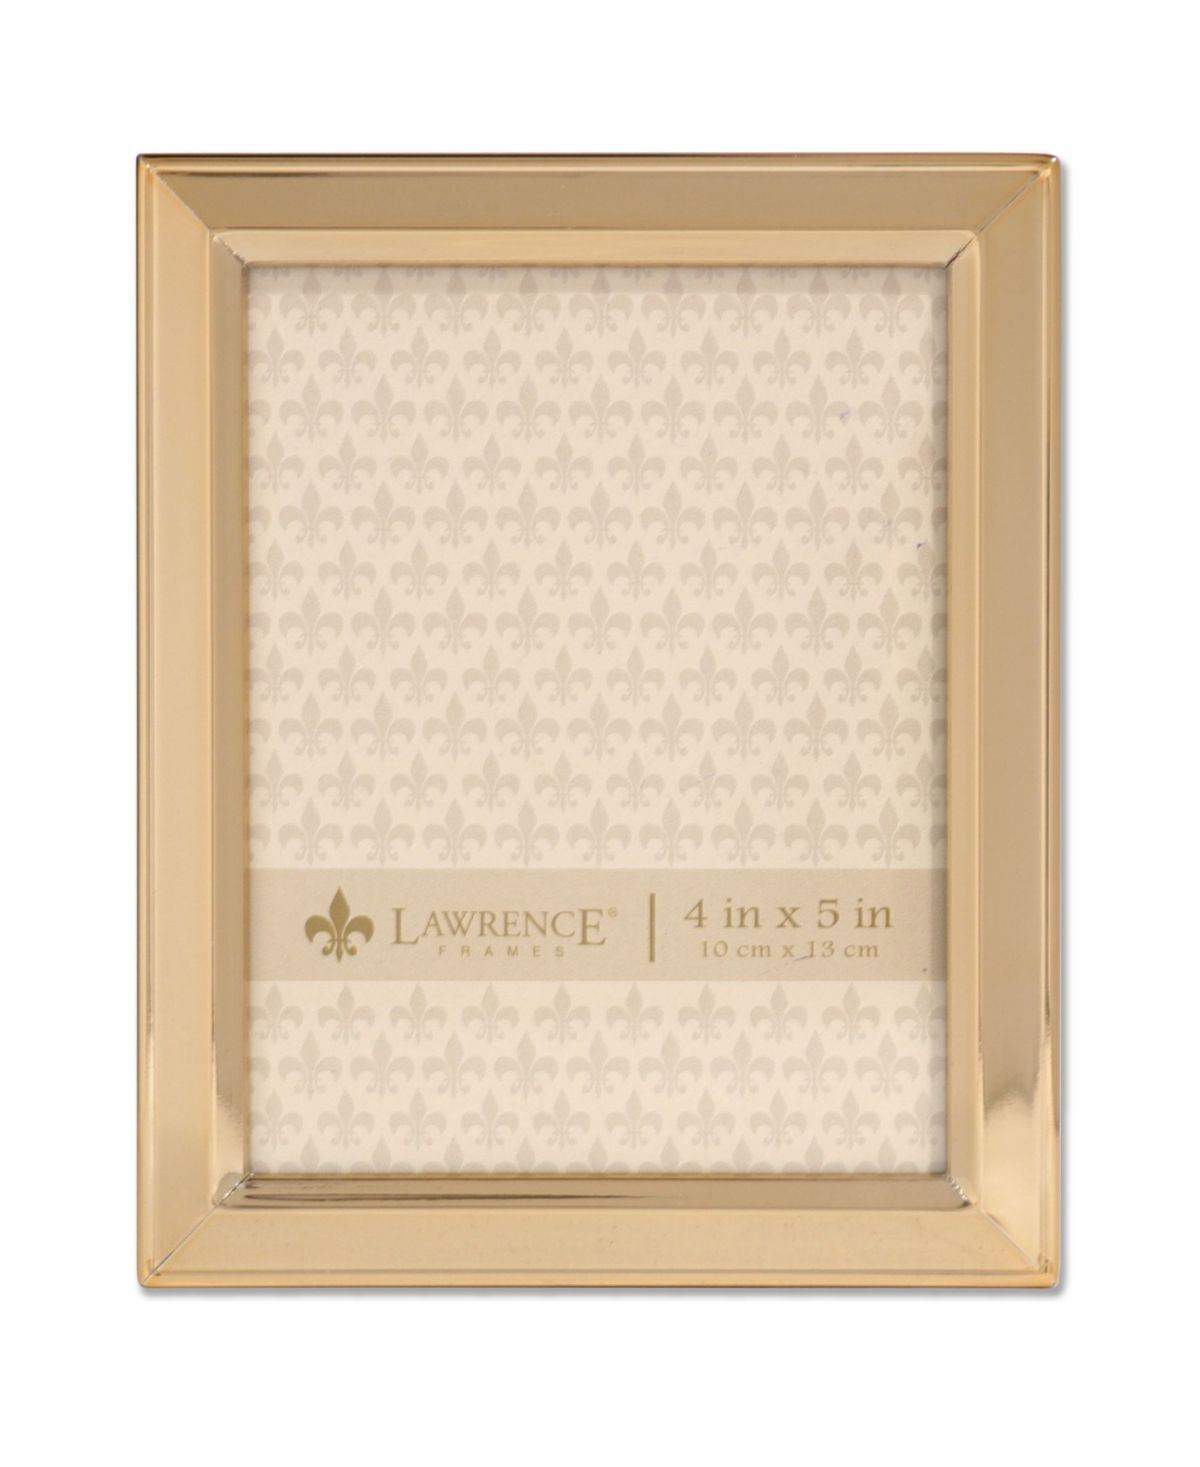 Lawrence Frames Gold Metal Picture Frame Classic Bevel 4 X 5 Reviews Picture Frames Home Decor Macy S Metal Picture Frames Frame Picture Frames